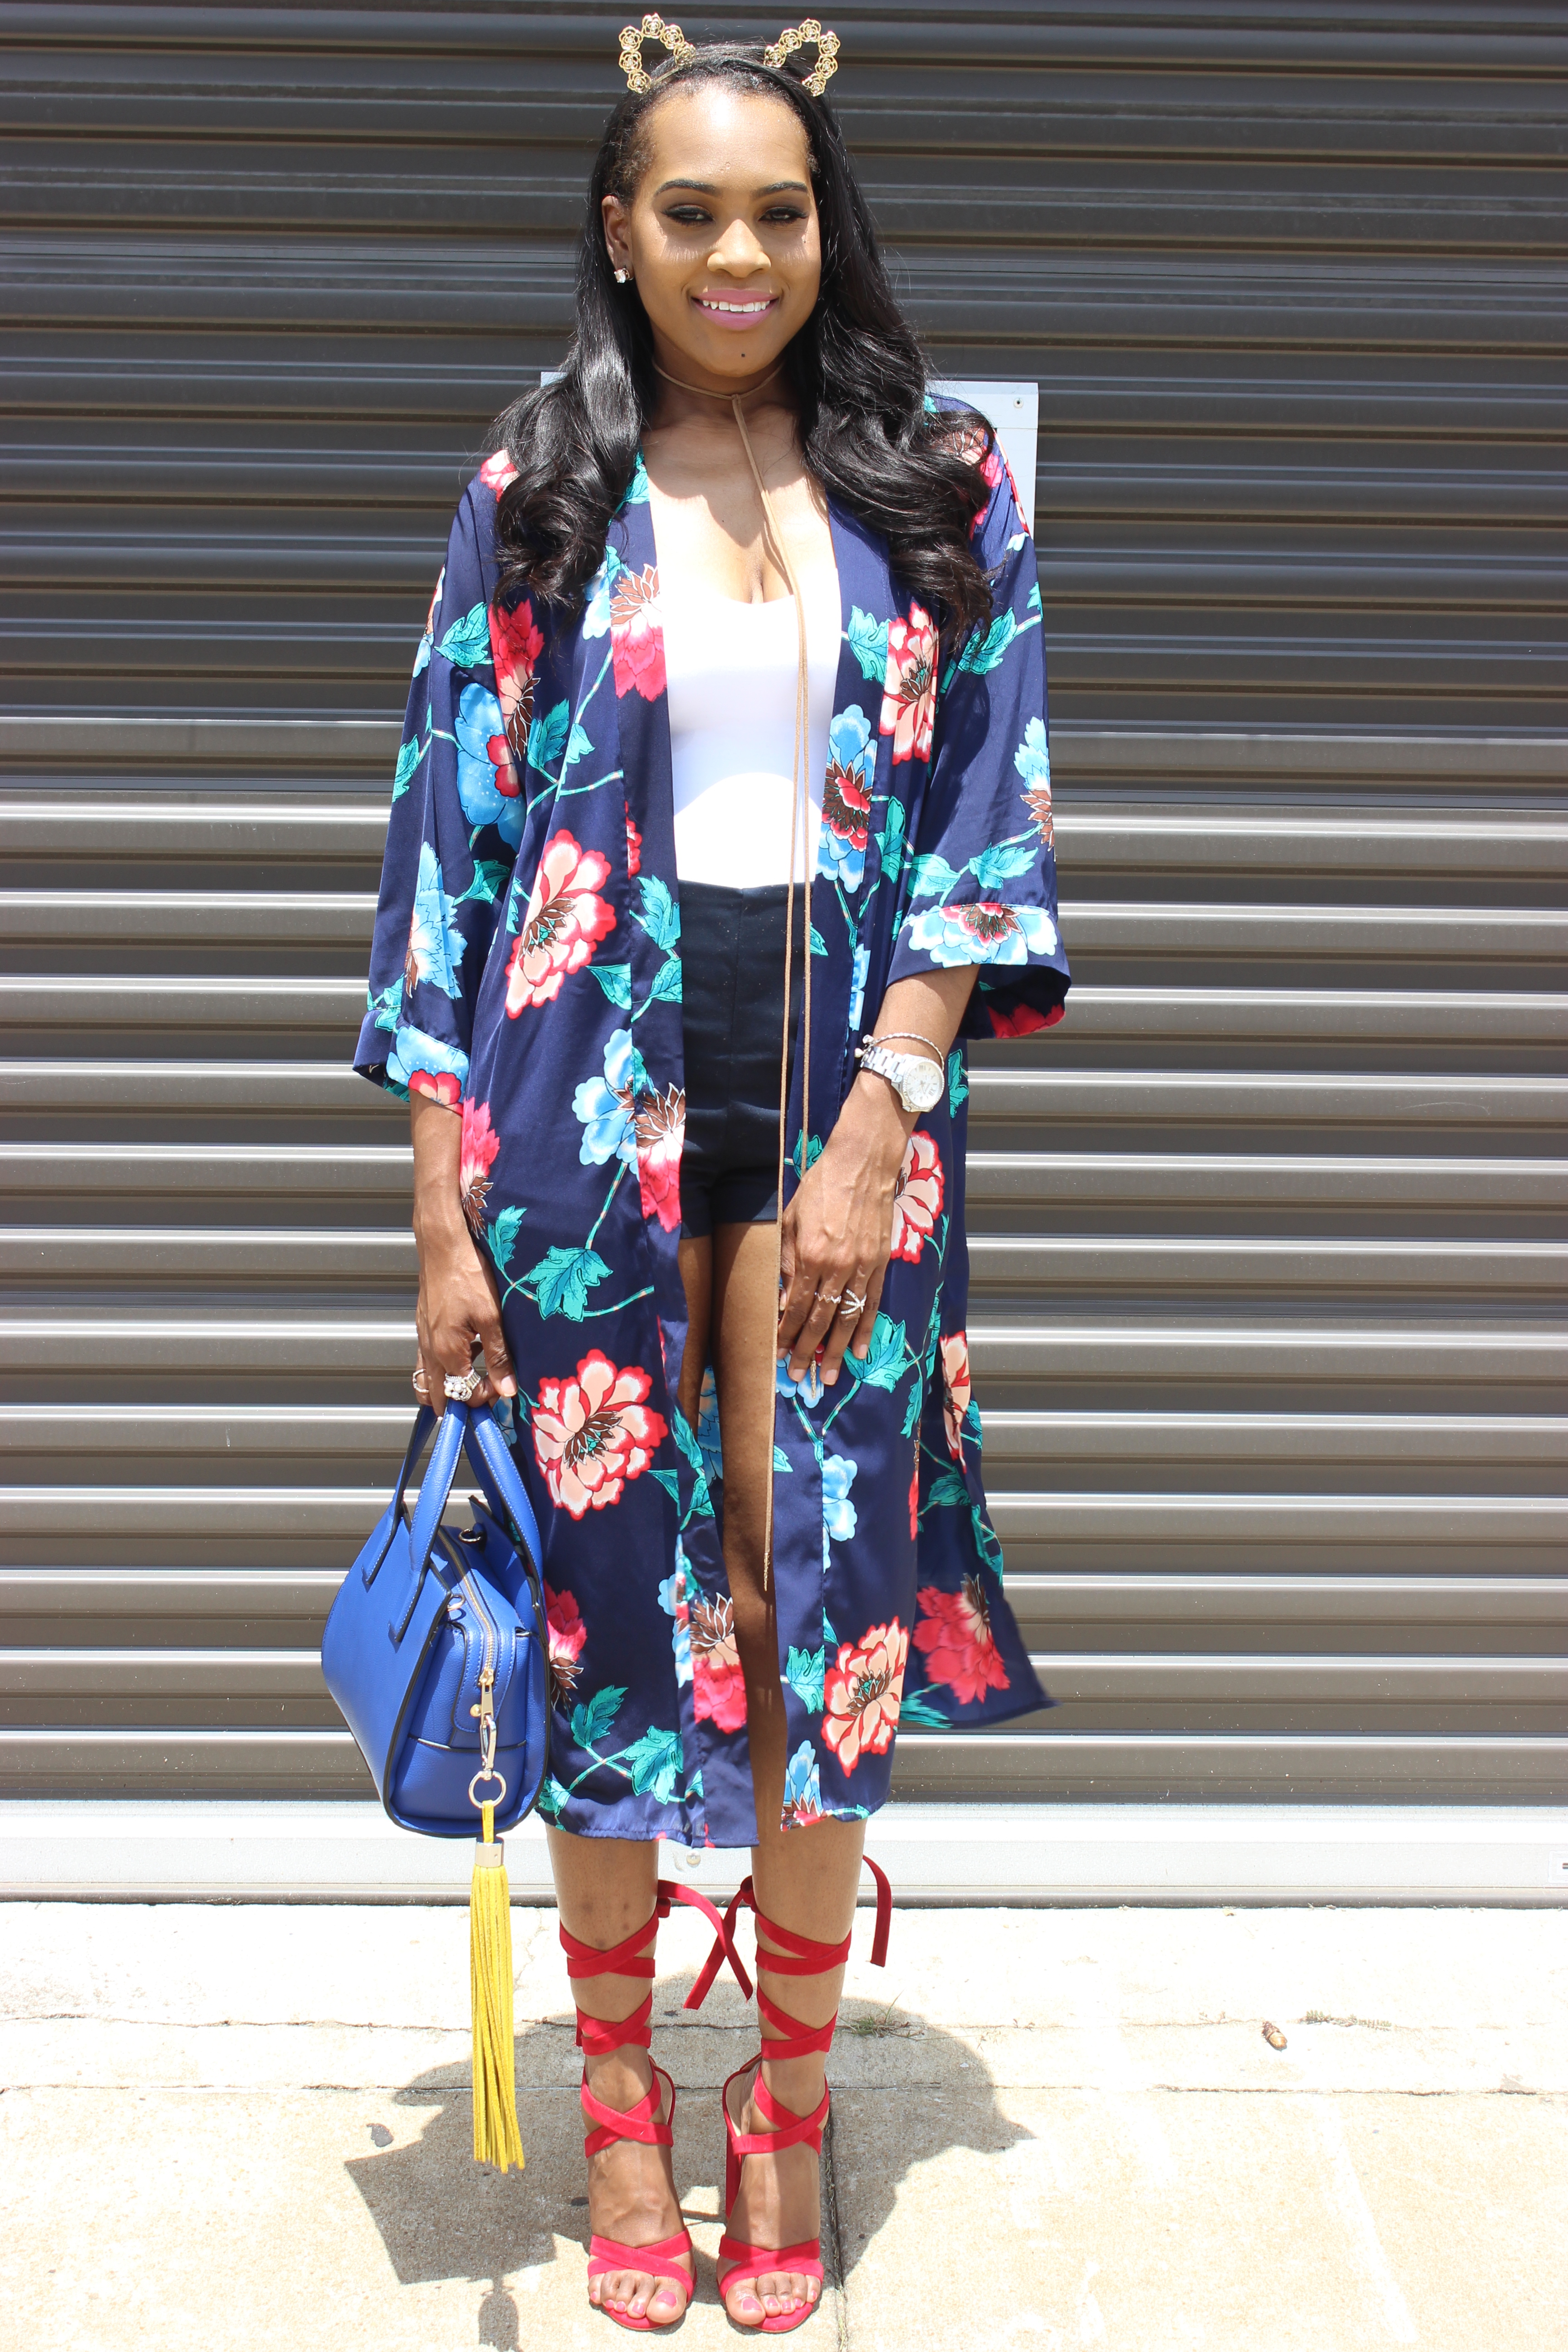 Style-files-Forever21-Blue-Ornate-Floral-Print-Kimono- Forever21-blue-shorts-with-side-silver-buckles-red-lace-up-public-desire-block-heels-forever21-white-strappy-backless-bodysuit-how-to-wear-kimono-oohlalablog-17